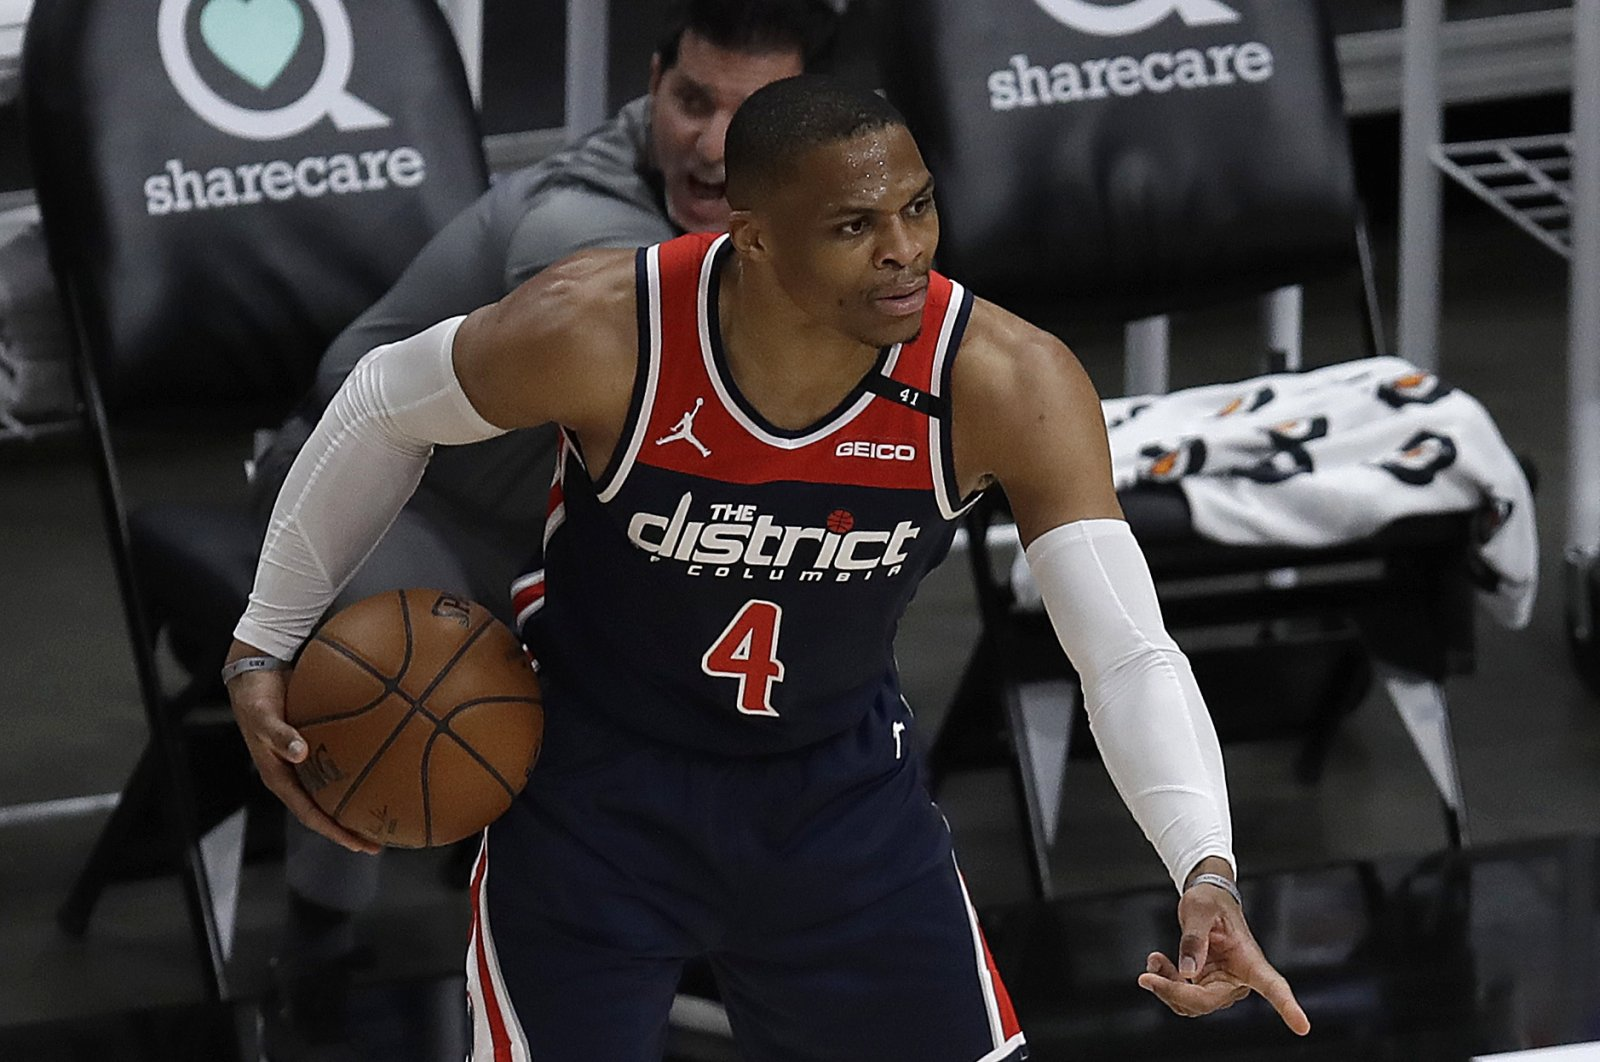 Washington Wizards' Russell Westbrook gestures during the first half of an NBA basketball game against the Atlanta Hawks, Monday, May 10, 2021, in Atlanta. (AP Photo)